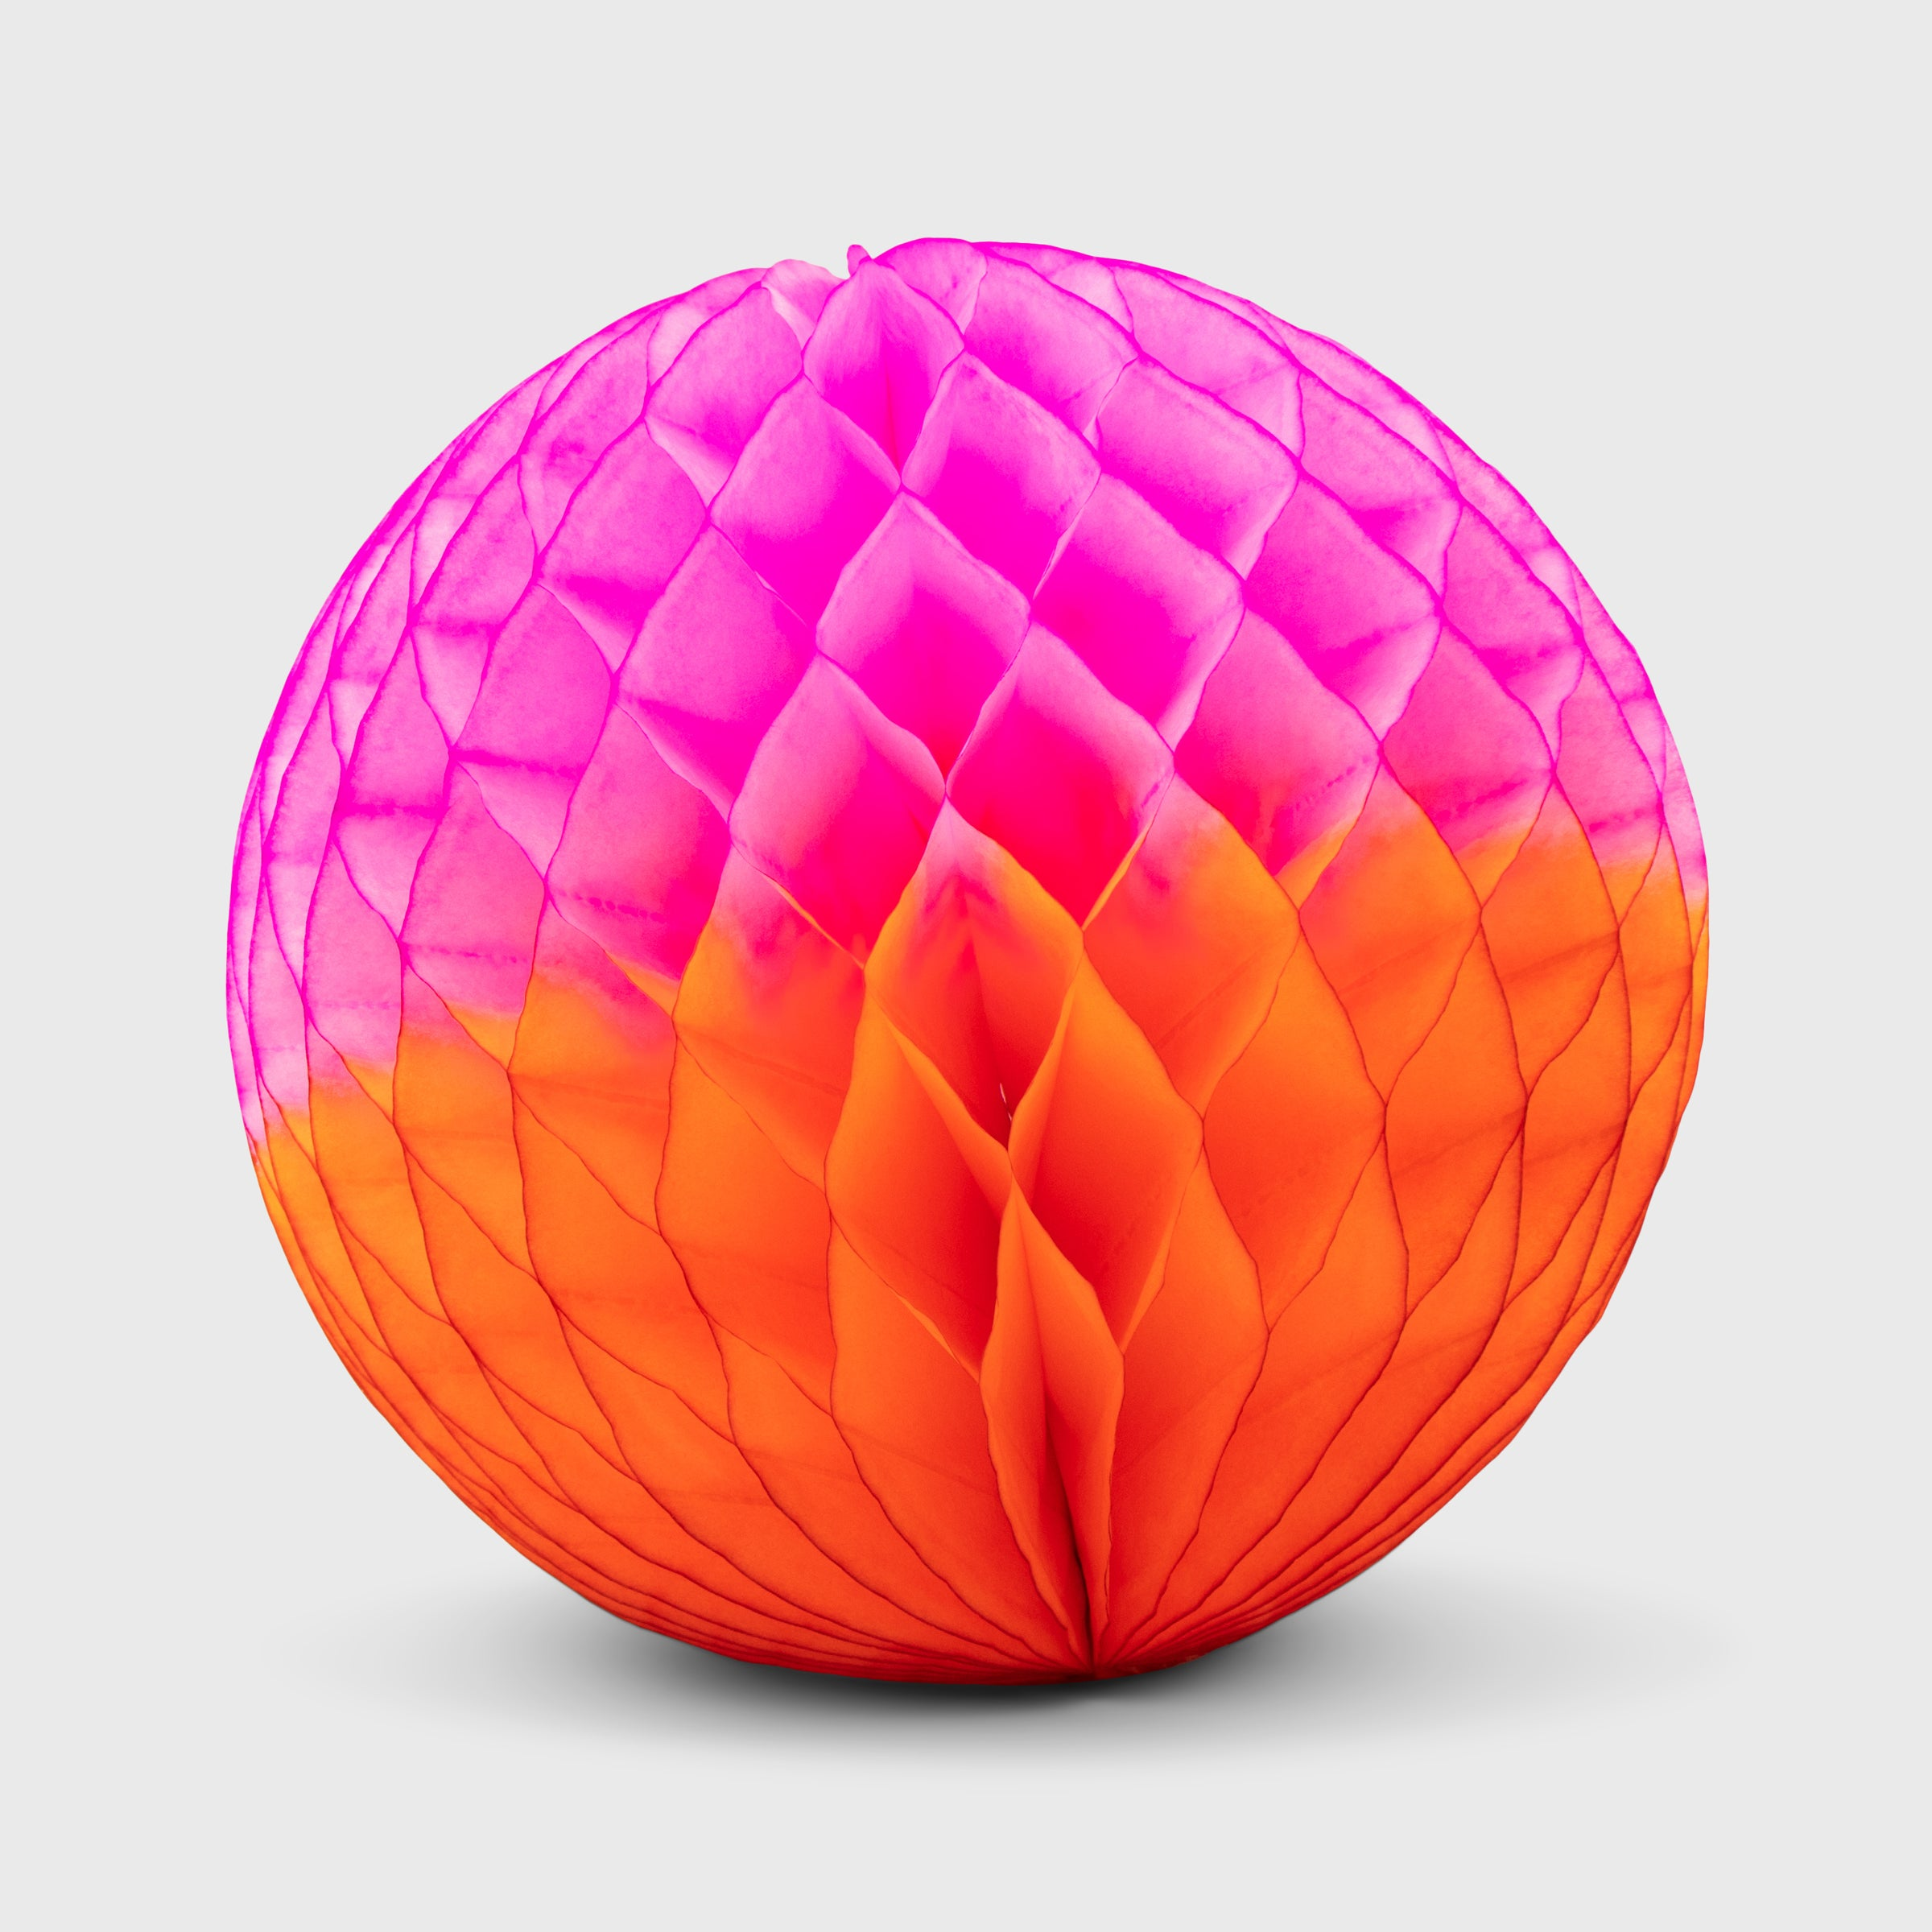 Honeycomb Ball 25cm, Orange & Pink Two-Tone